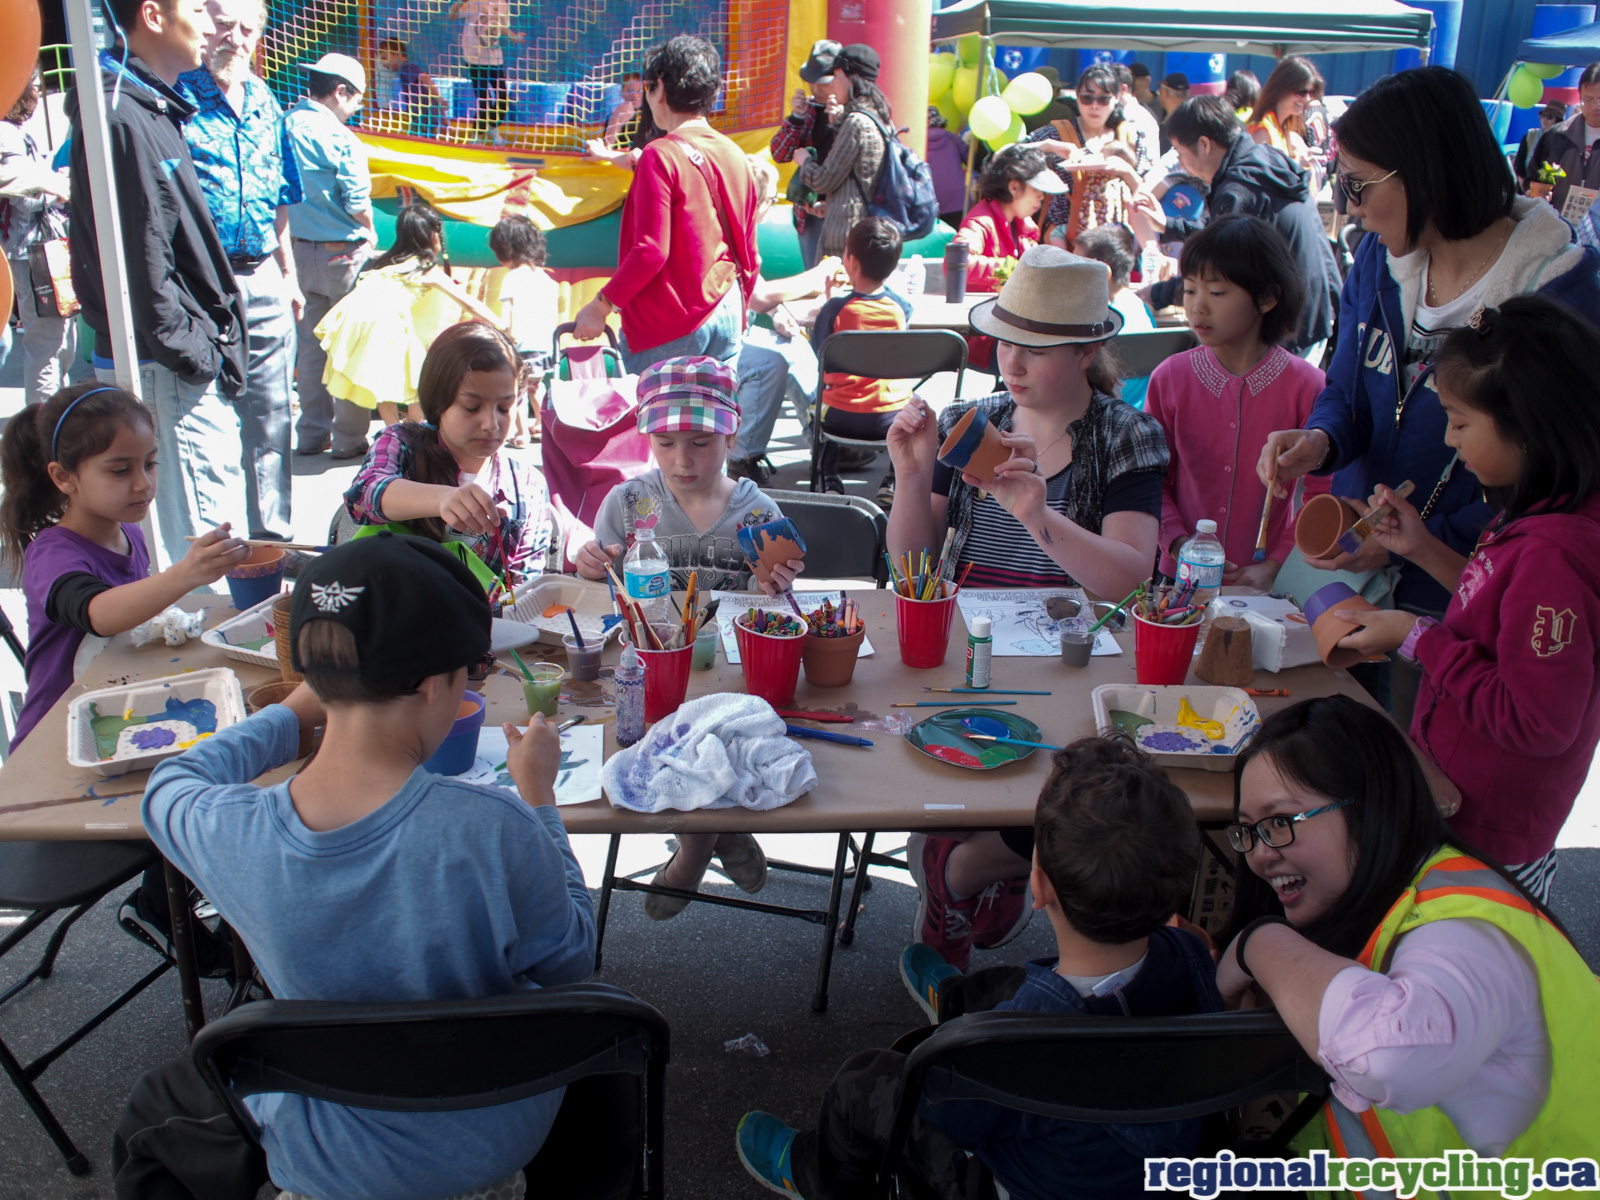 Regional Recycling Burnaby | 2016 Earth Day | Recycling Education